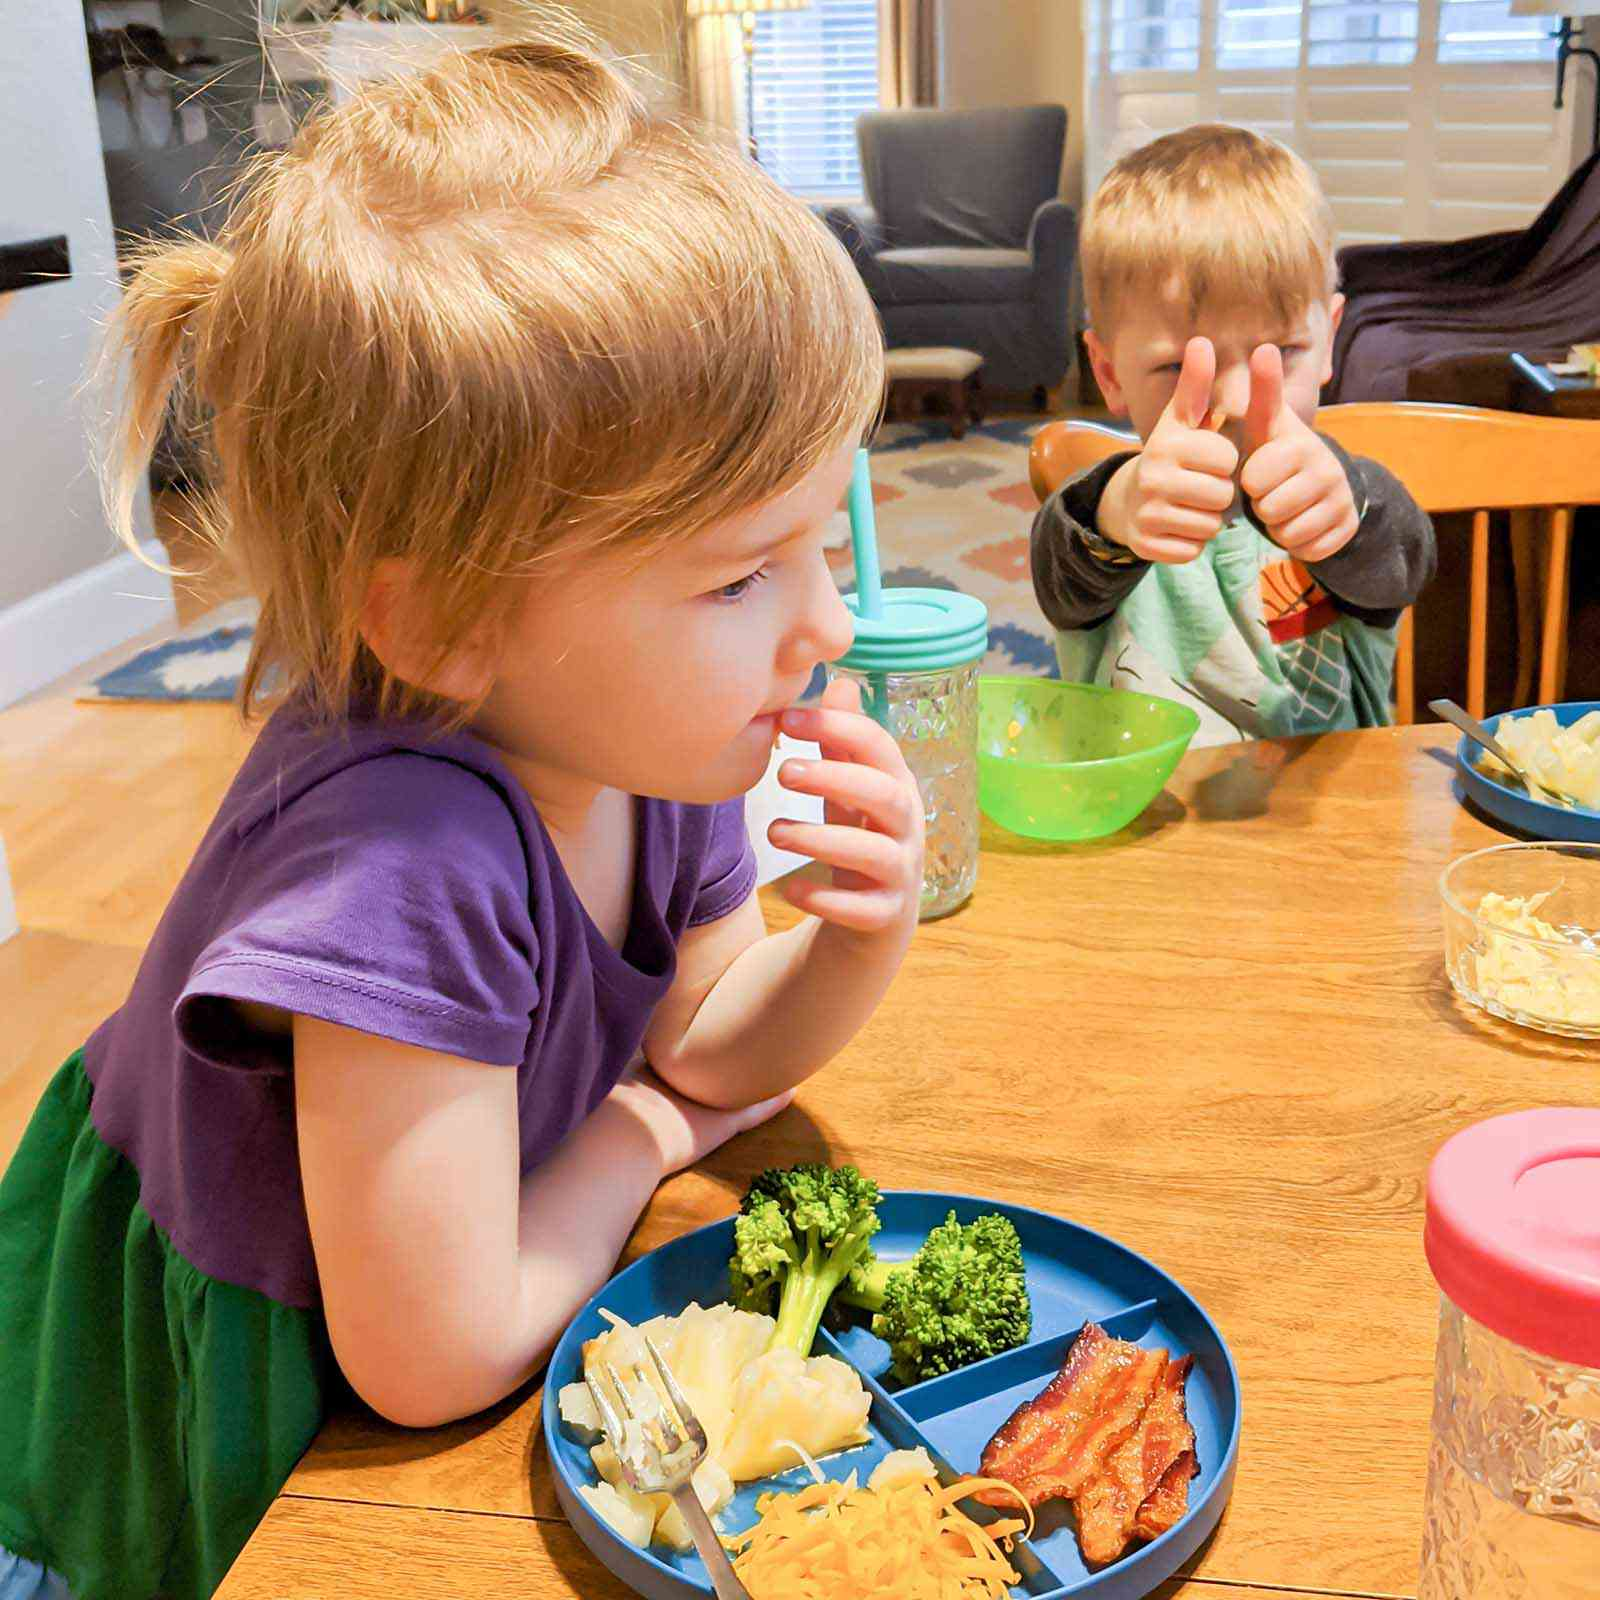 A young girl and boy are sitting at a kitchen table with plates and drinks in front of them. One plate is split into four sections. Each section has one type of food on it. Bacon, shredded cheddar cheese, mashed potato and cooked broccoli is on the plate. The boy is giving a thumbs up sign at his chair.